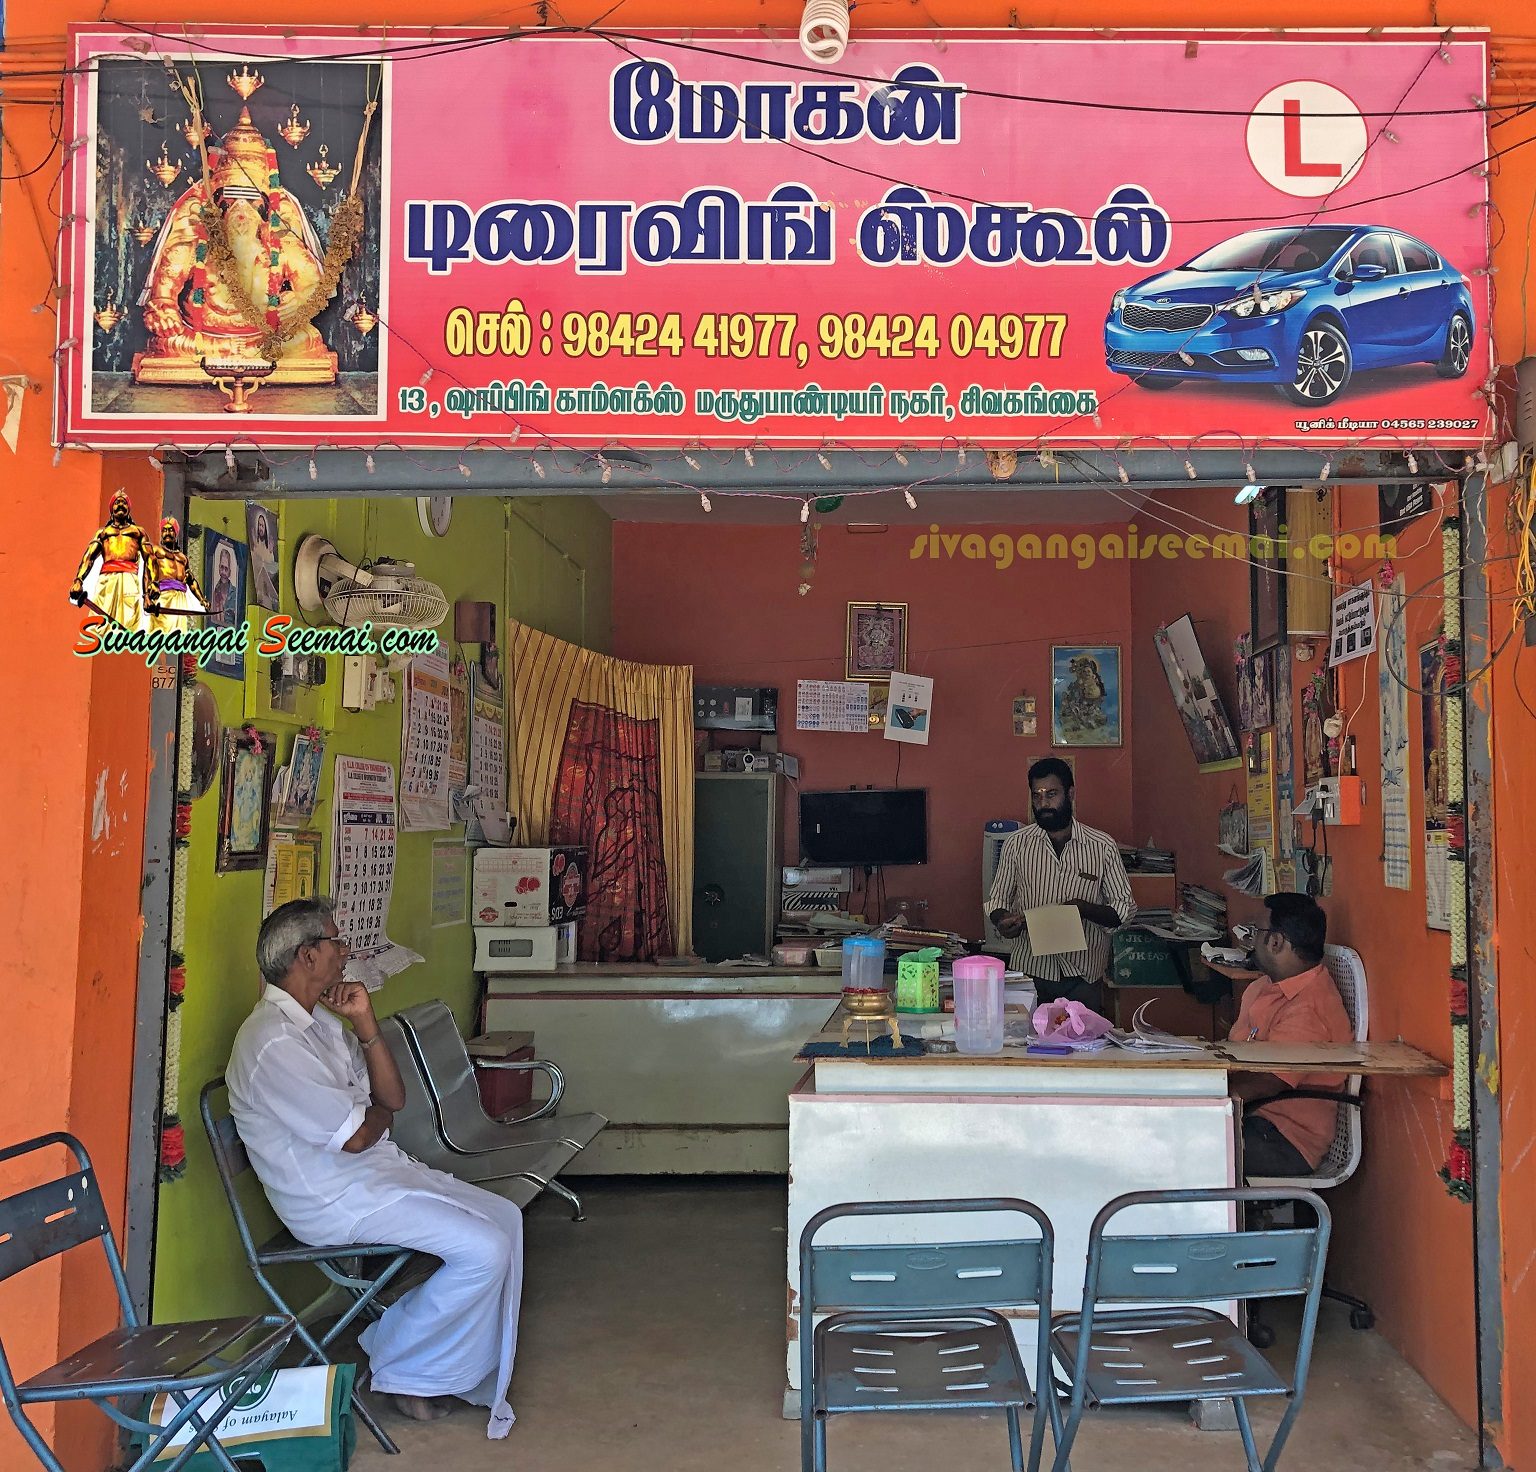 mohan driving school located near sivagangai rto office